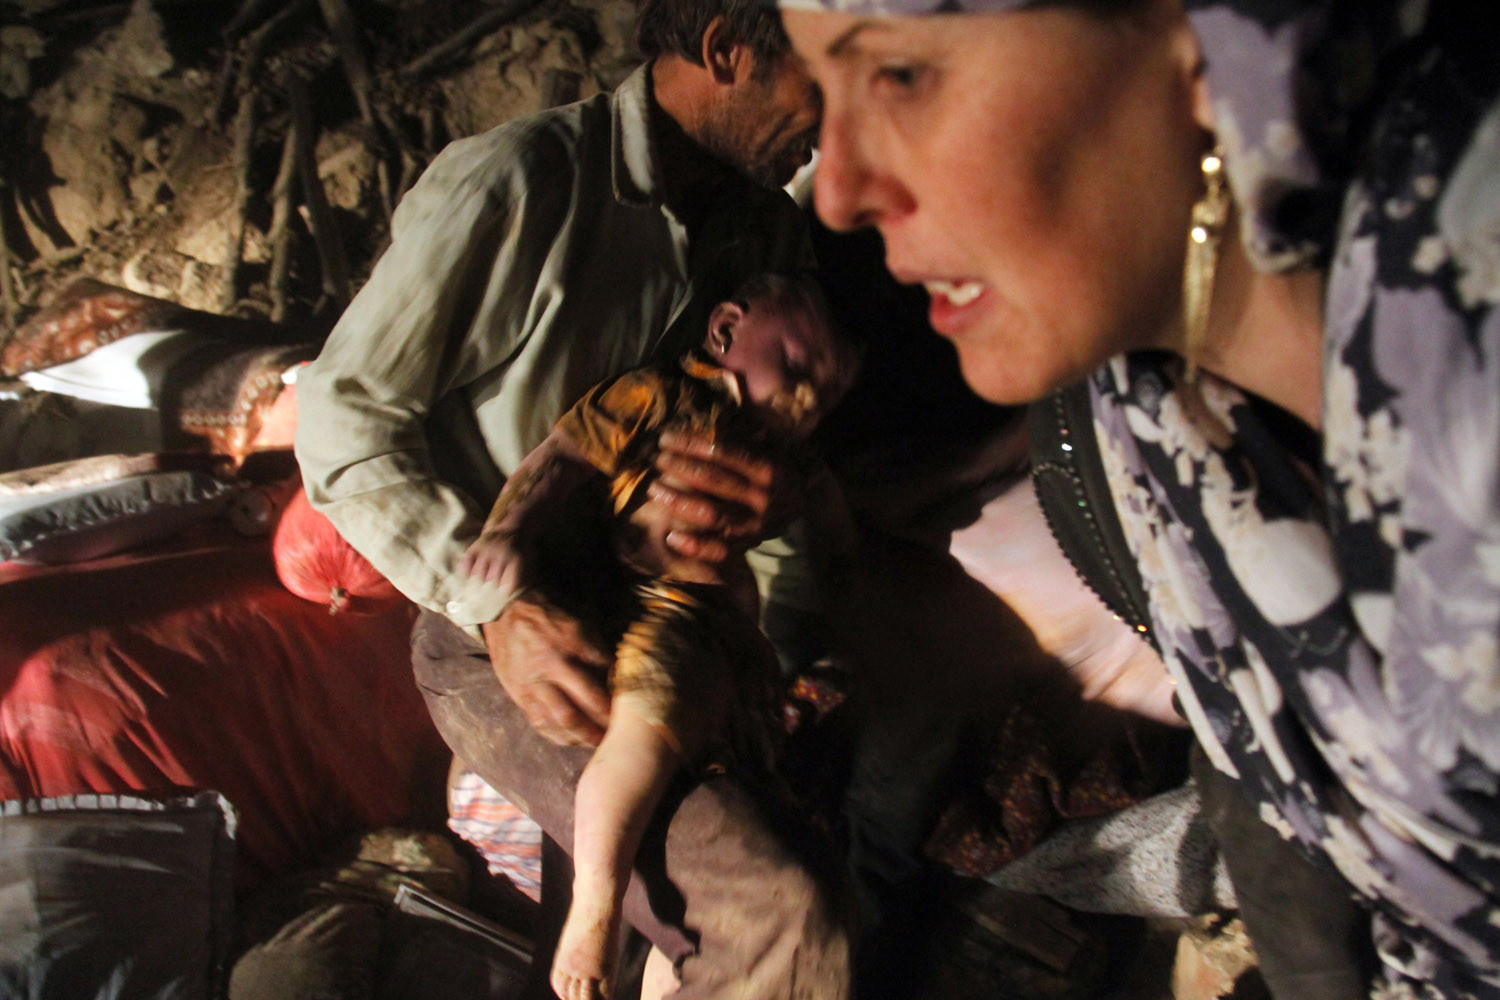 Aug. 11, 2012. Iranian residents try to rescue a child from the rubble in Sourmah village, near the town of Varzaqan, after two earthquakes hit northwestern Azarbaijan province in Iran.